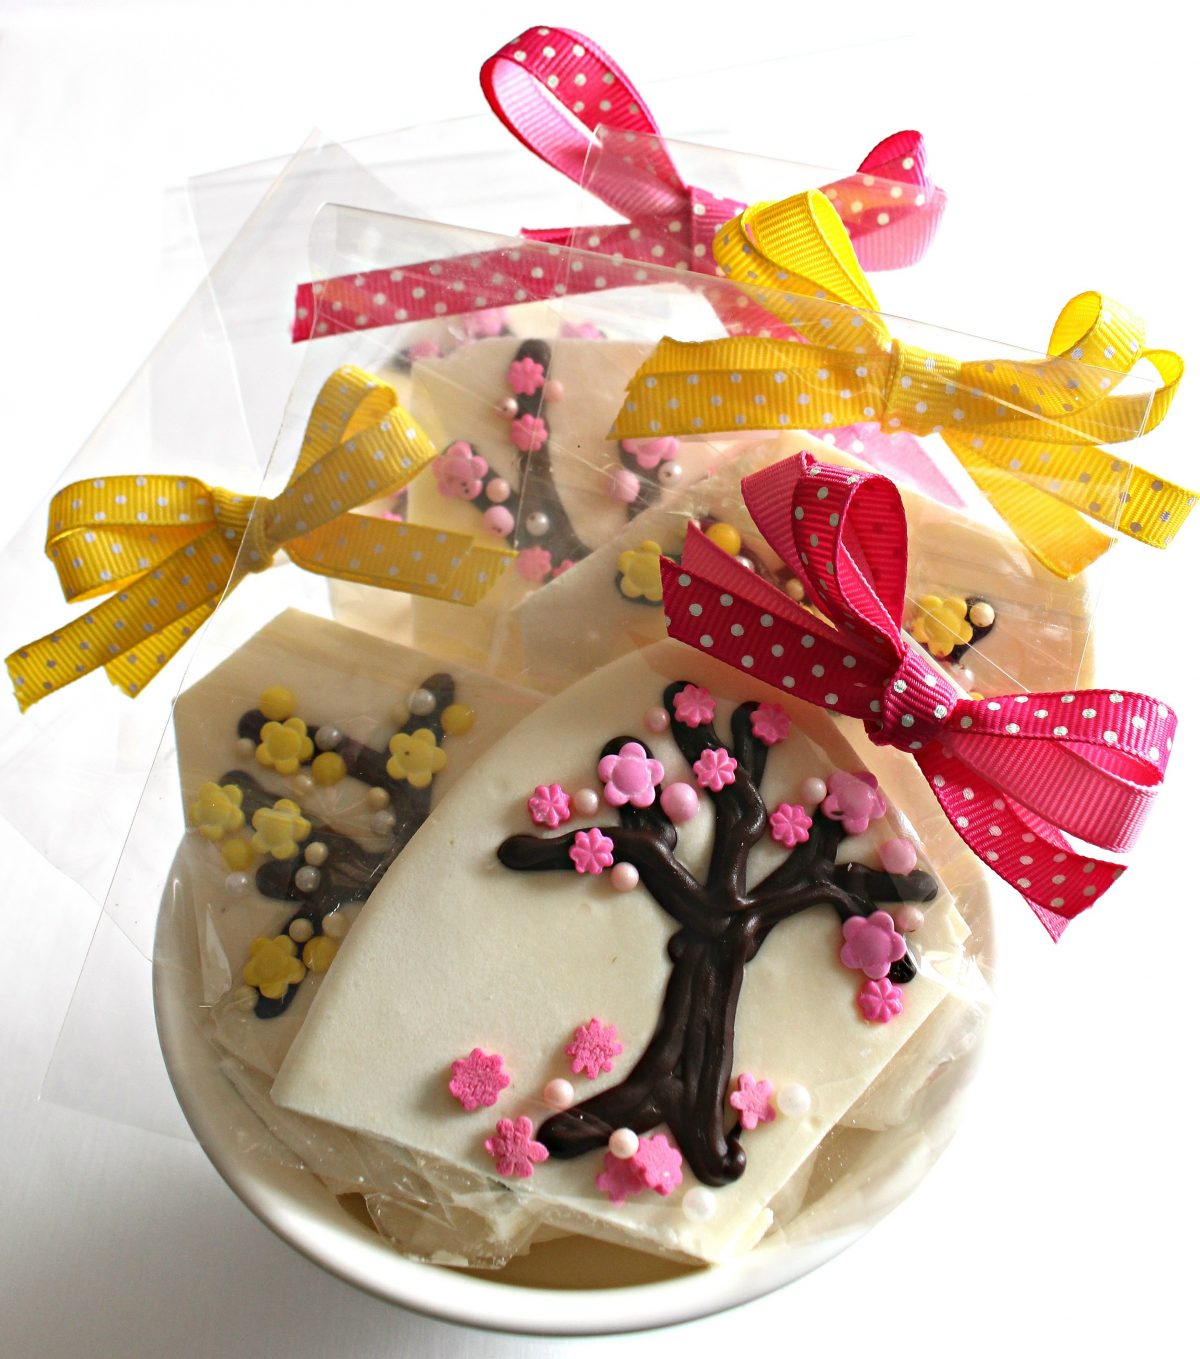 Spring Blossom White Chocolate Bark cut into pieces in cellophane bags with bows for gifting.